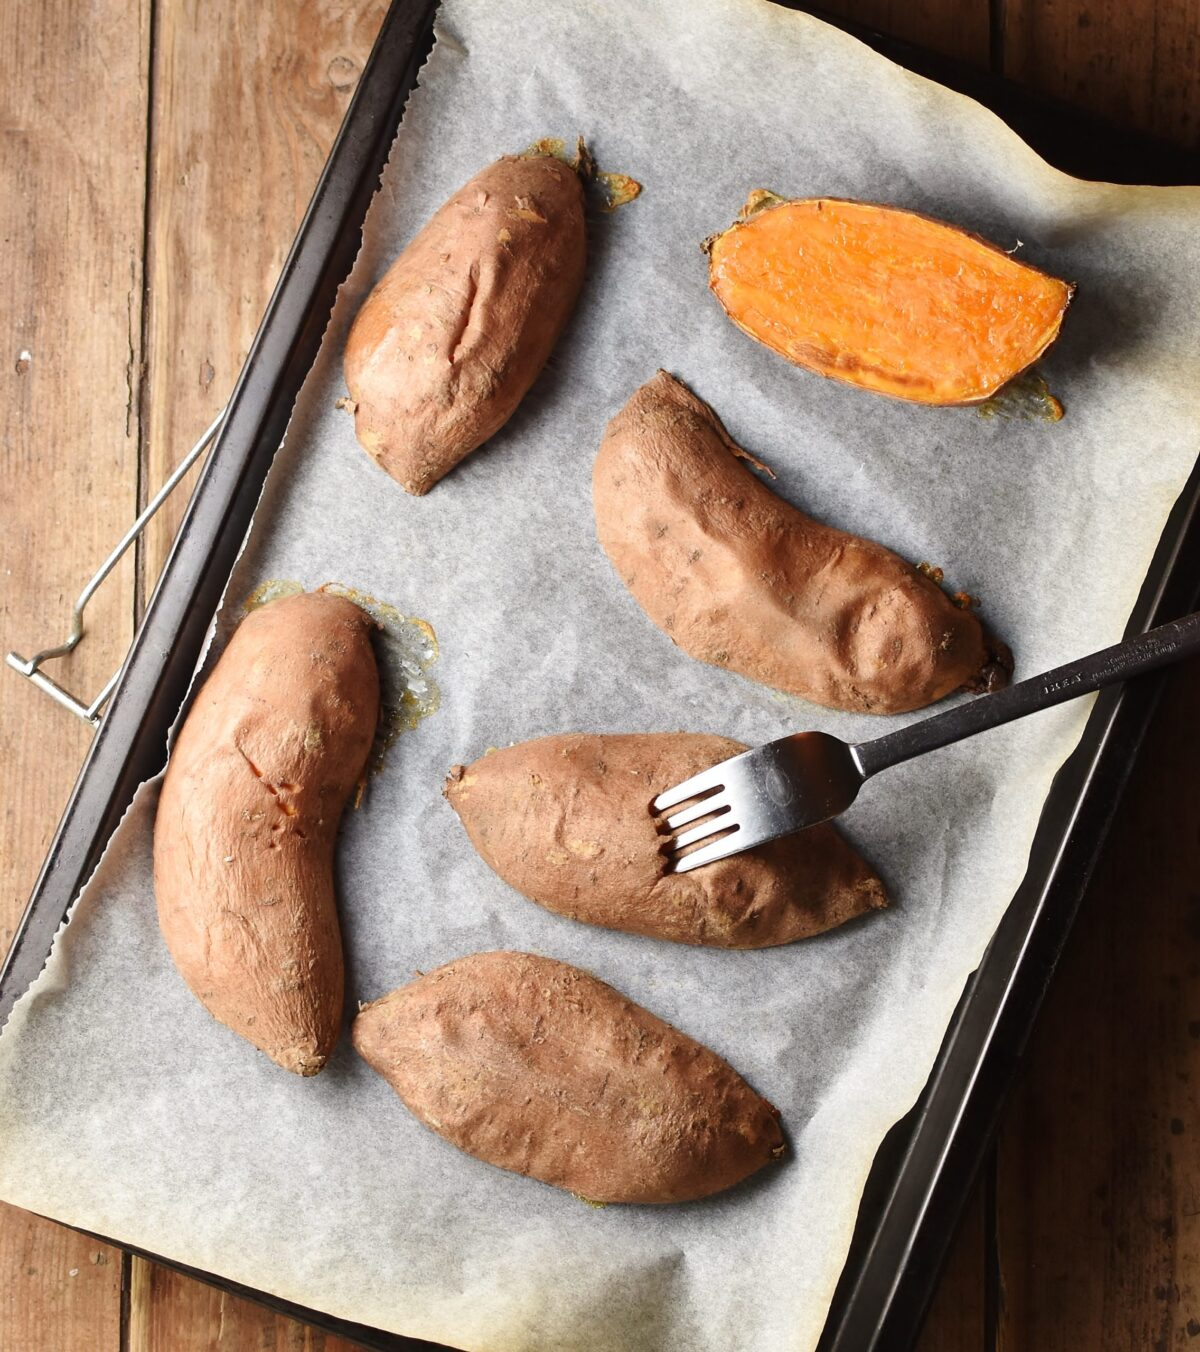 Sweet potato halves with fork on top of baking sheet lined with paper.